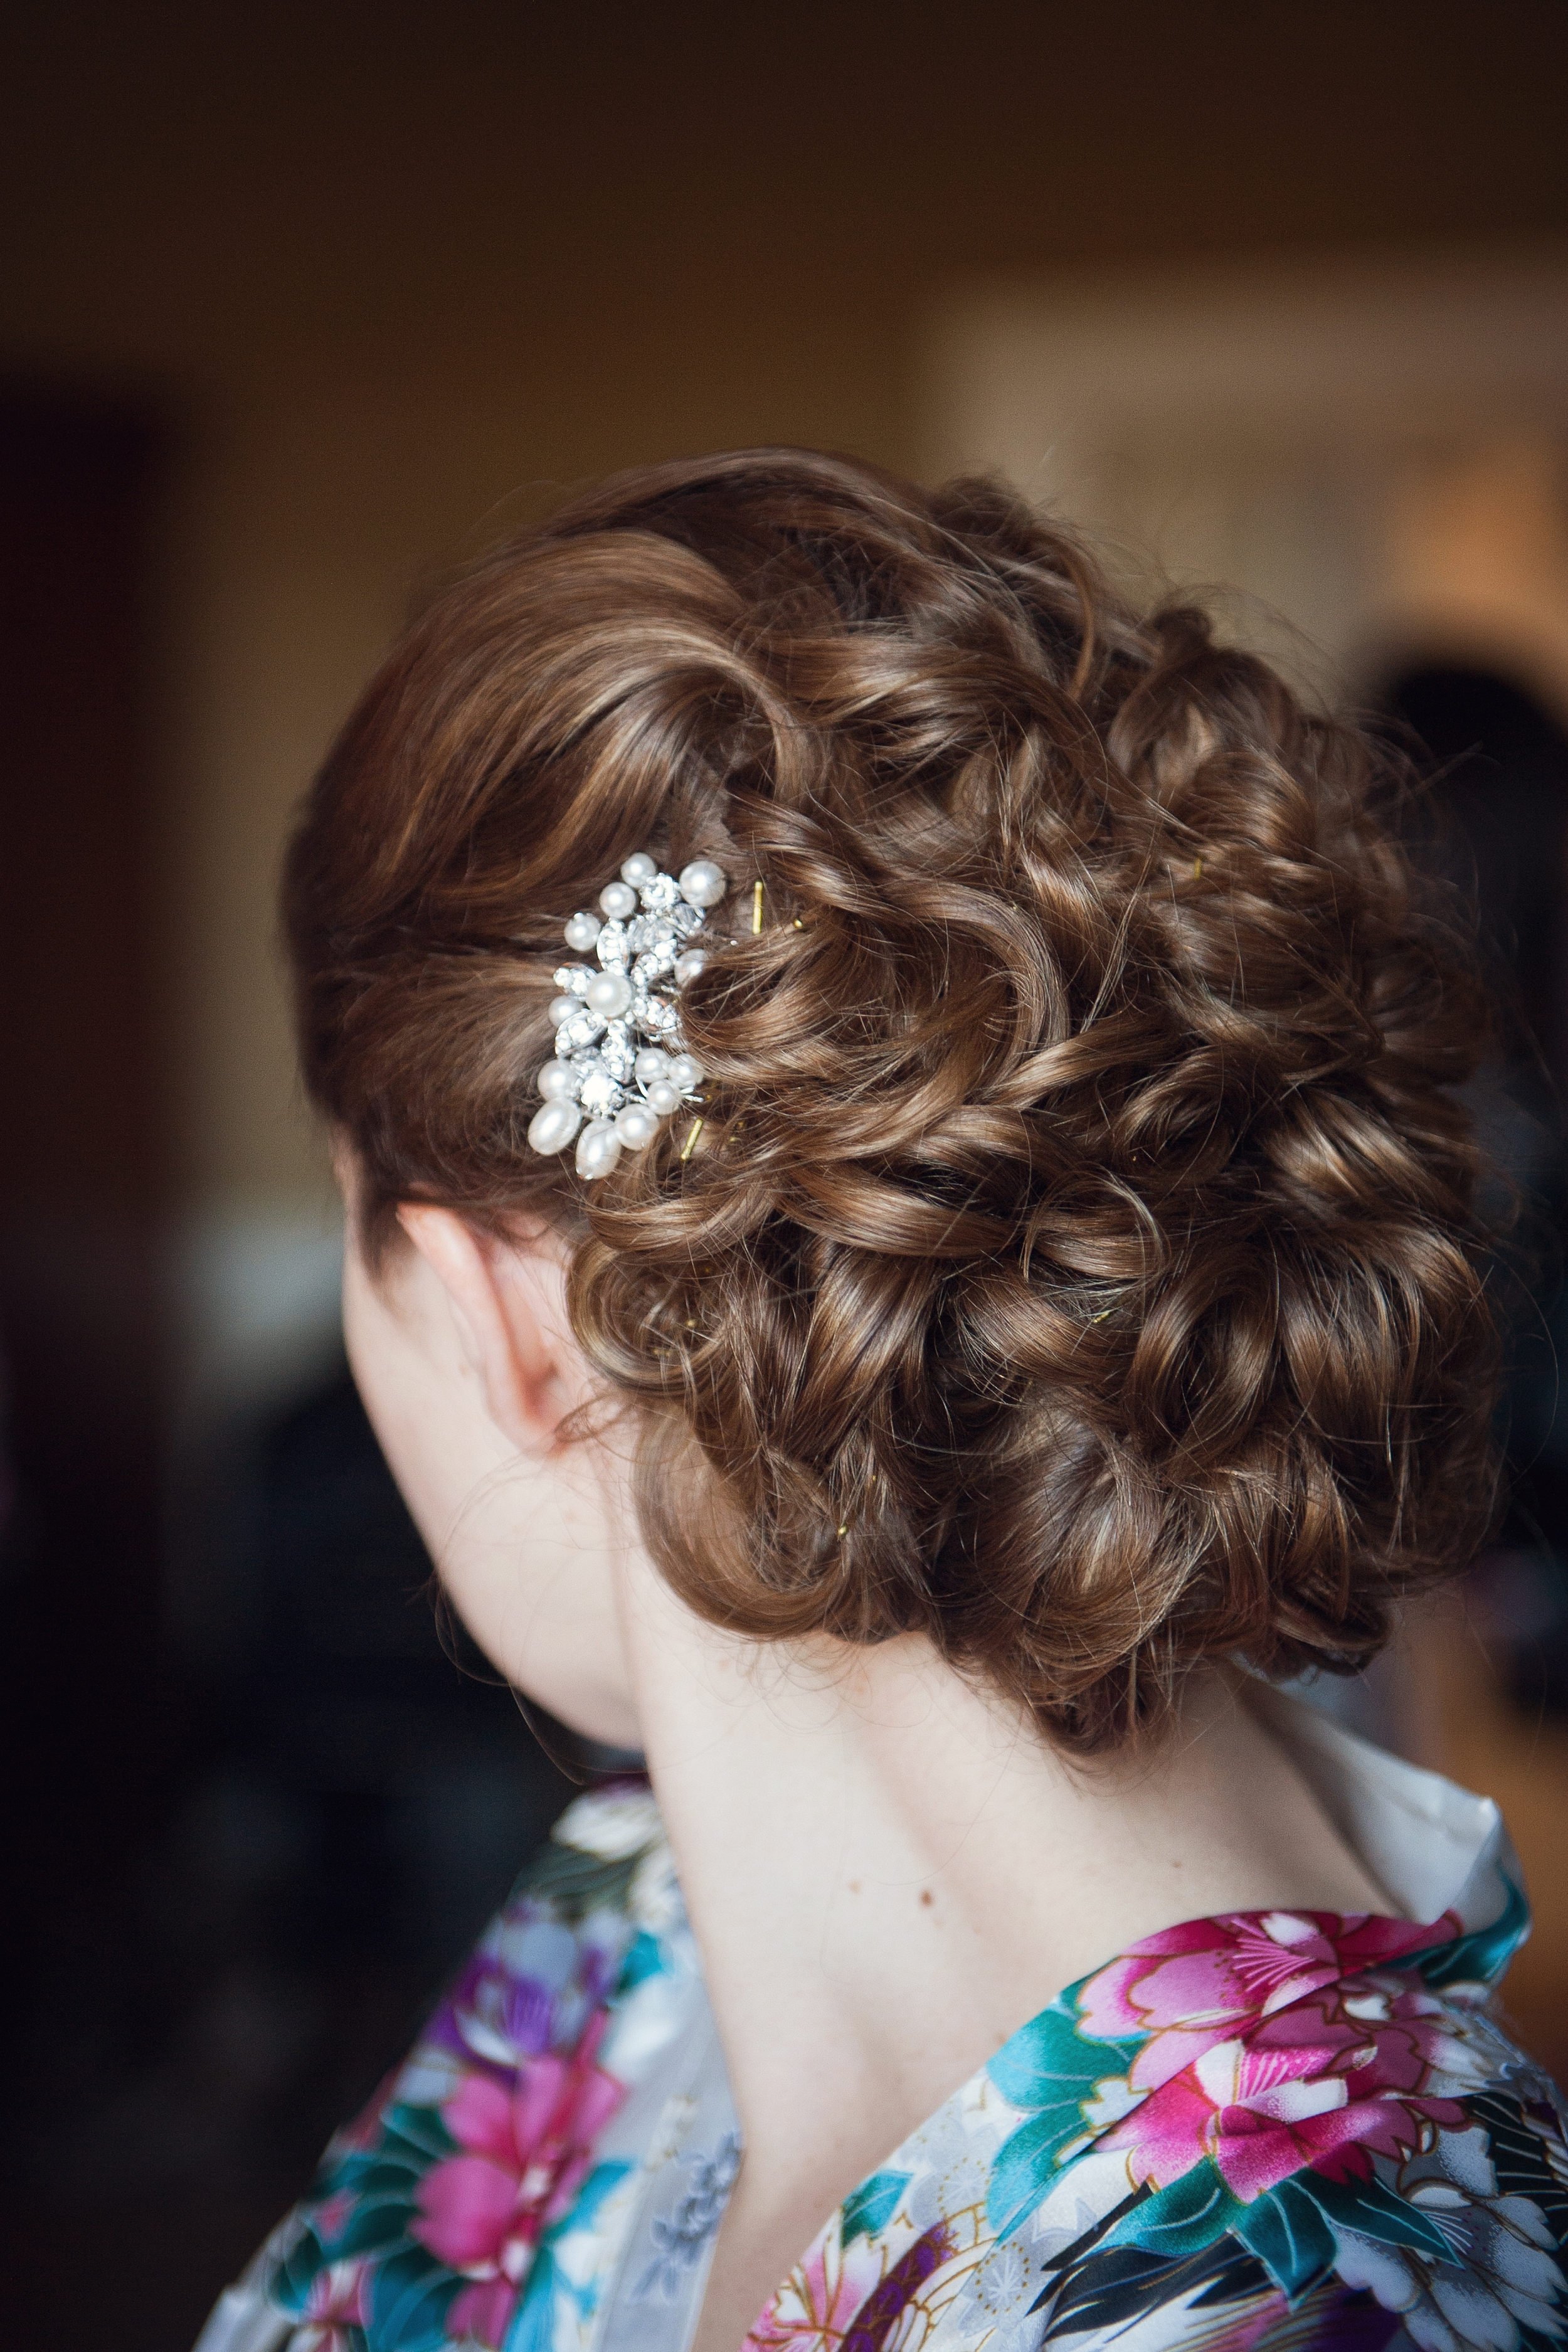 My hair was done by Castle Durrow's in-house stylist.